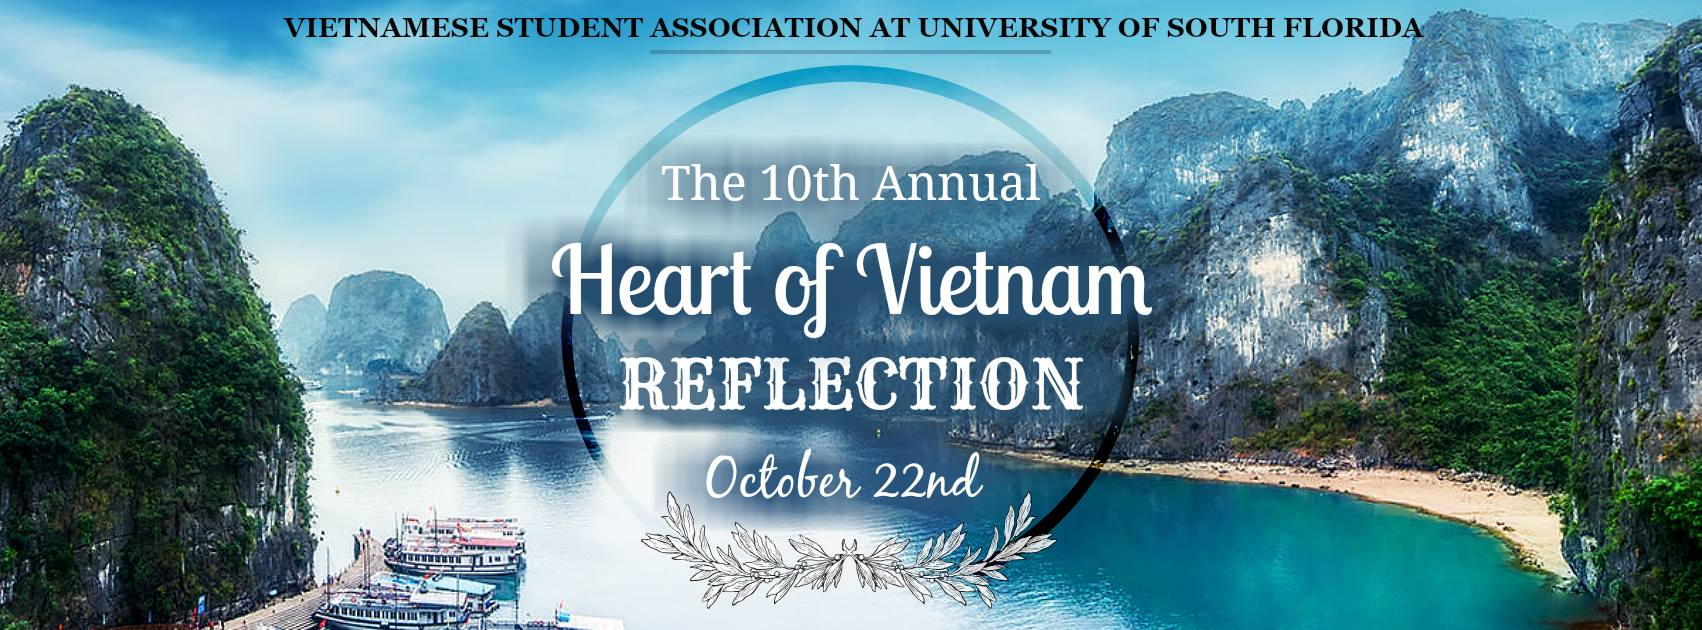 Vsa At Usf S 10th Annual Heart Of Vietnam Reflection